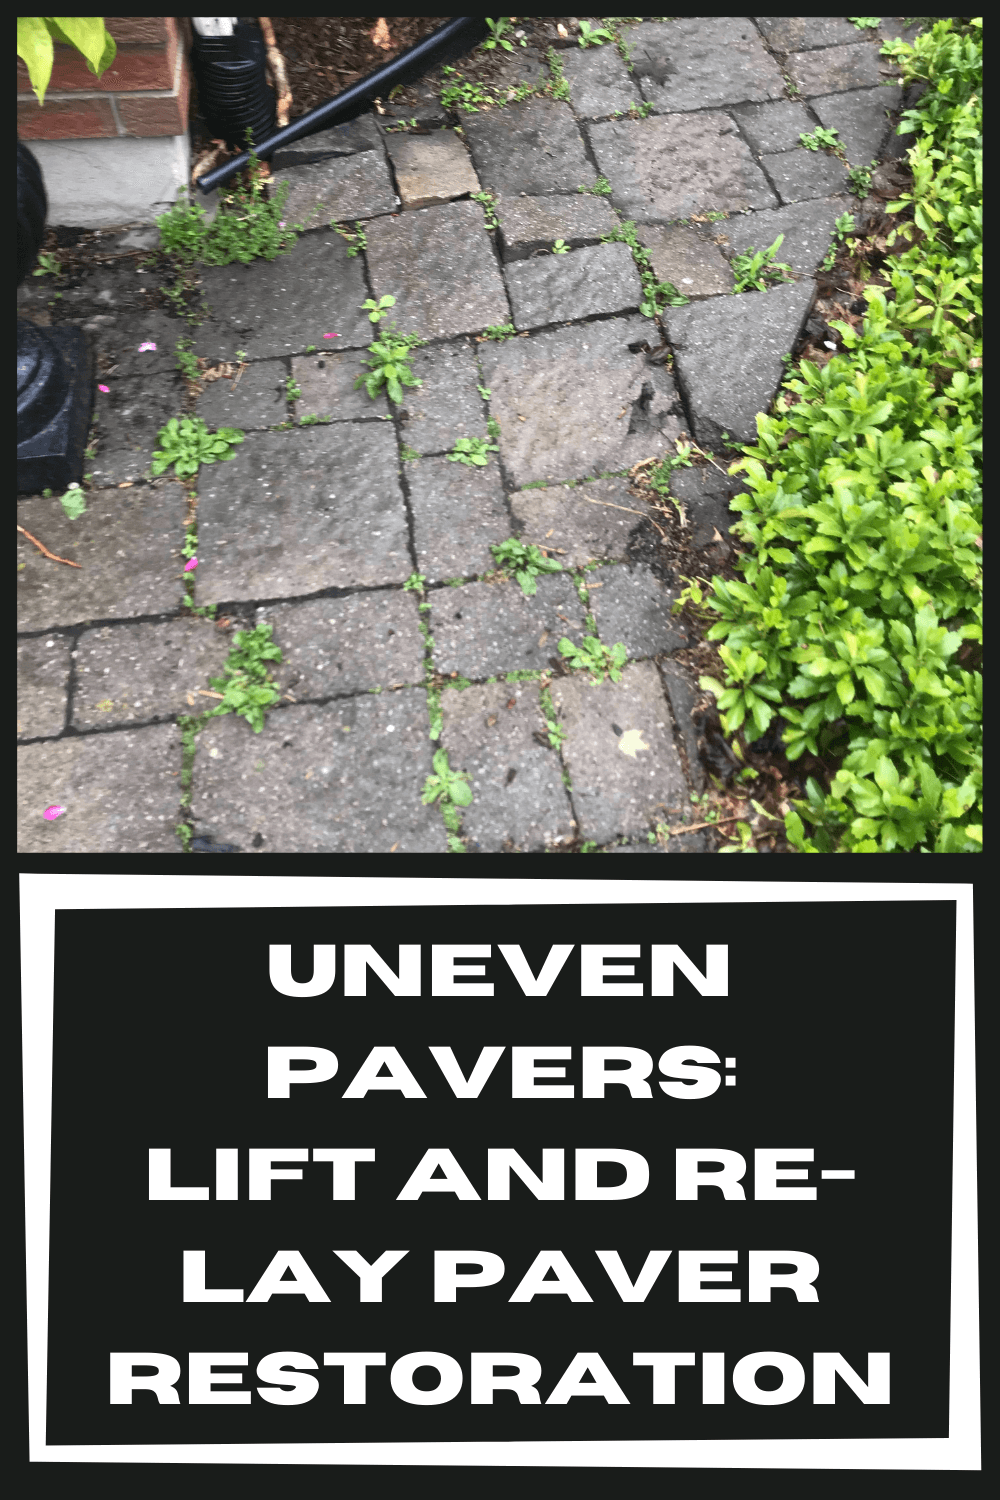 uneven-pavers-lift-and-re-lay-paver-restoration